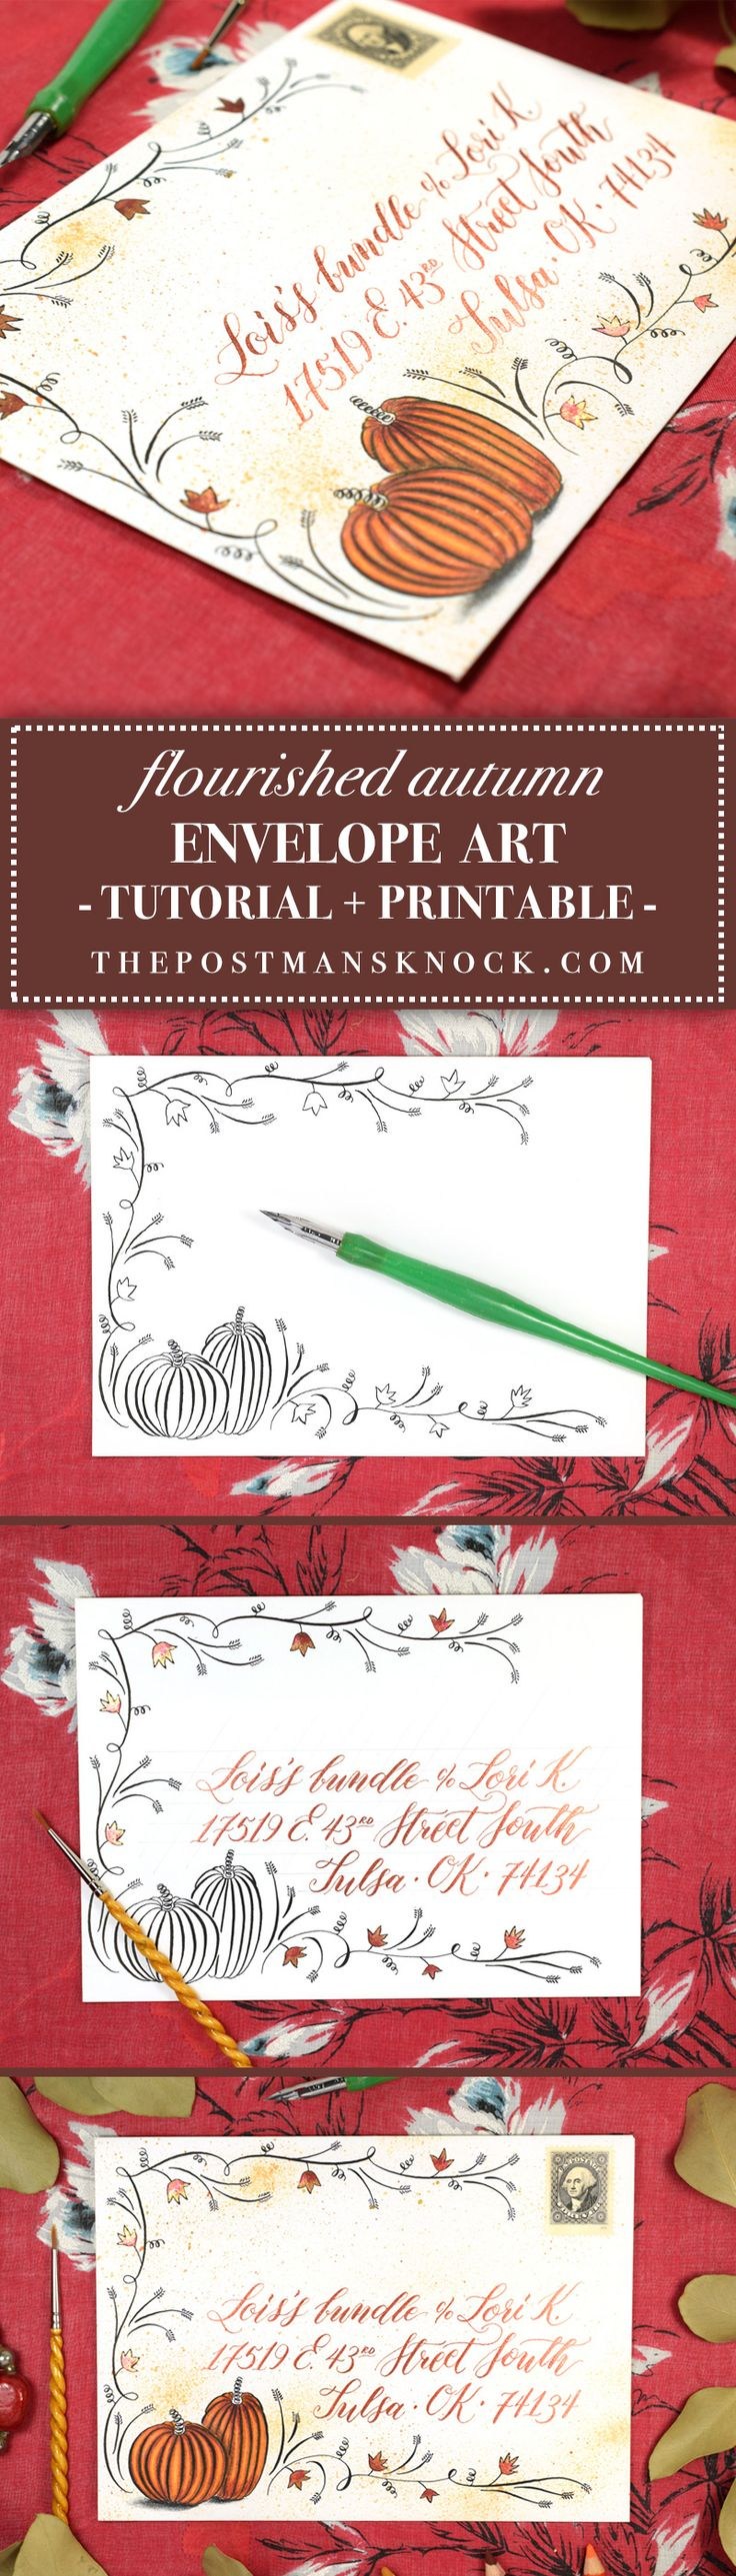 Flourished Autumn Envelope Art Tutorial